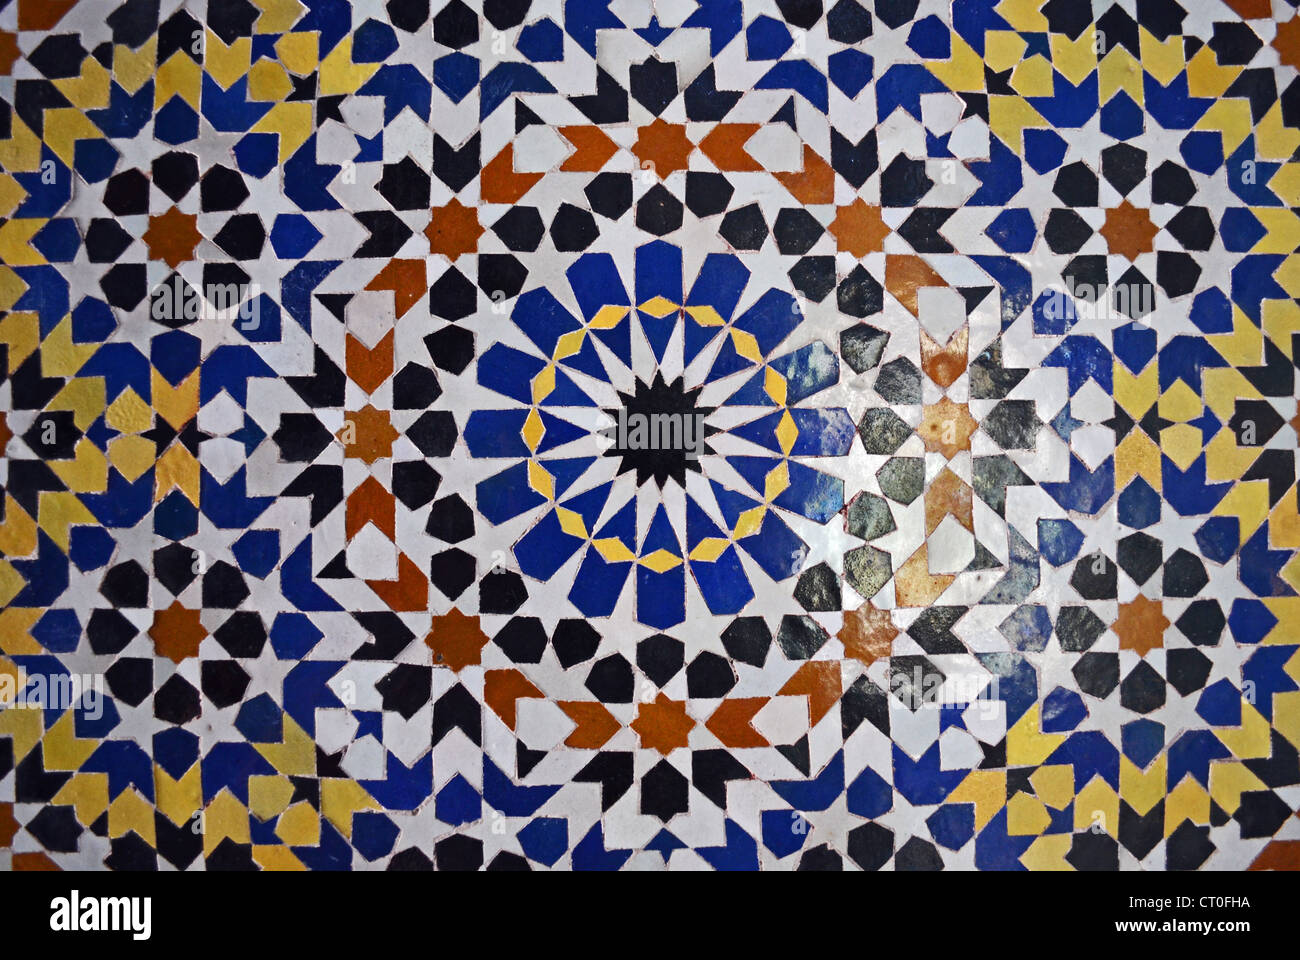 moroccan design with tiles in fes stock photo, royalty free image